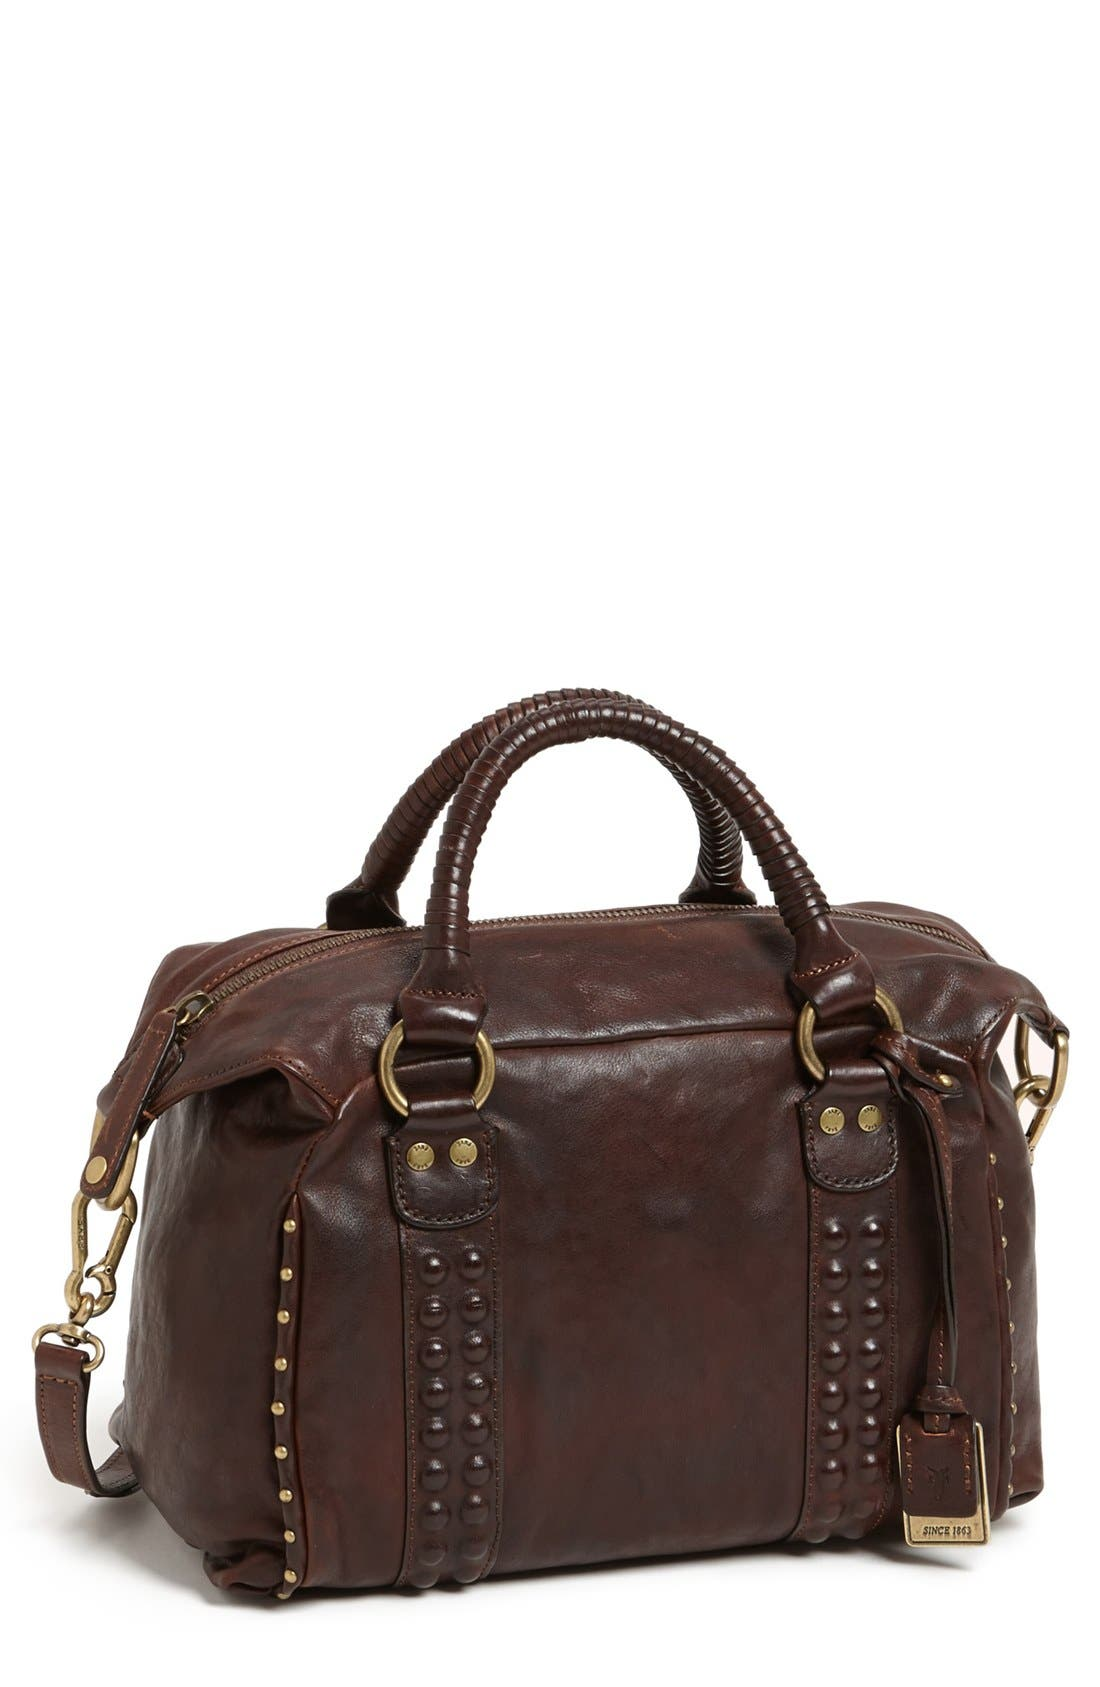 Alternate Image 1 Selected - Frye 'Roxanne' Satchel